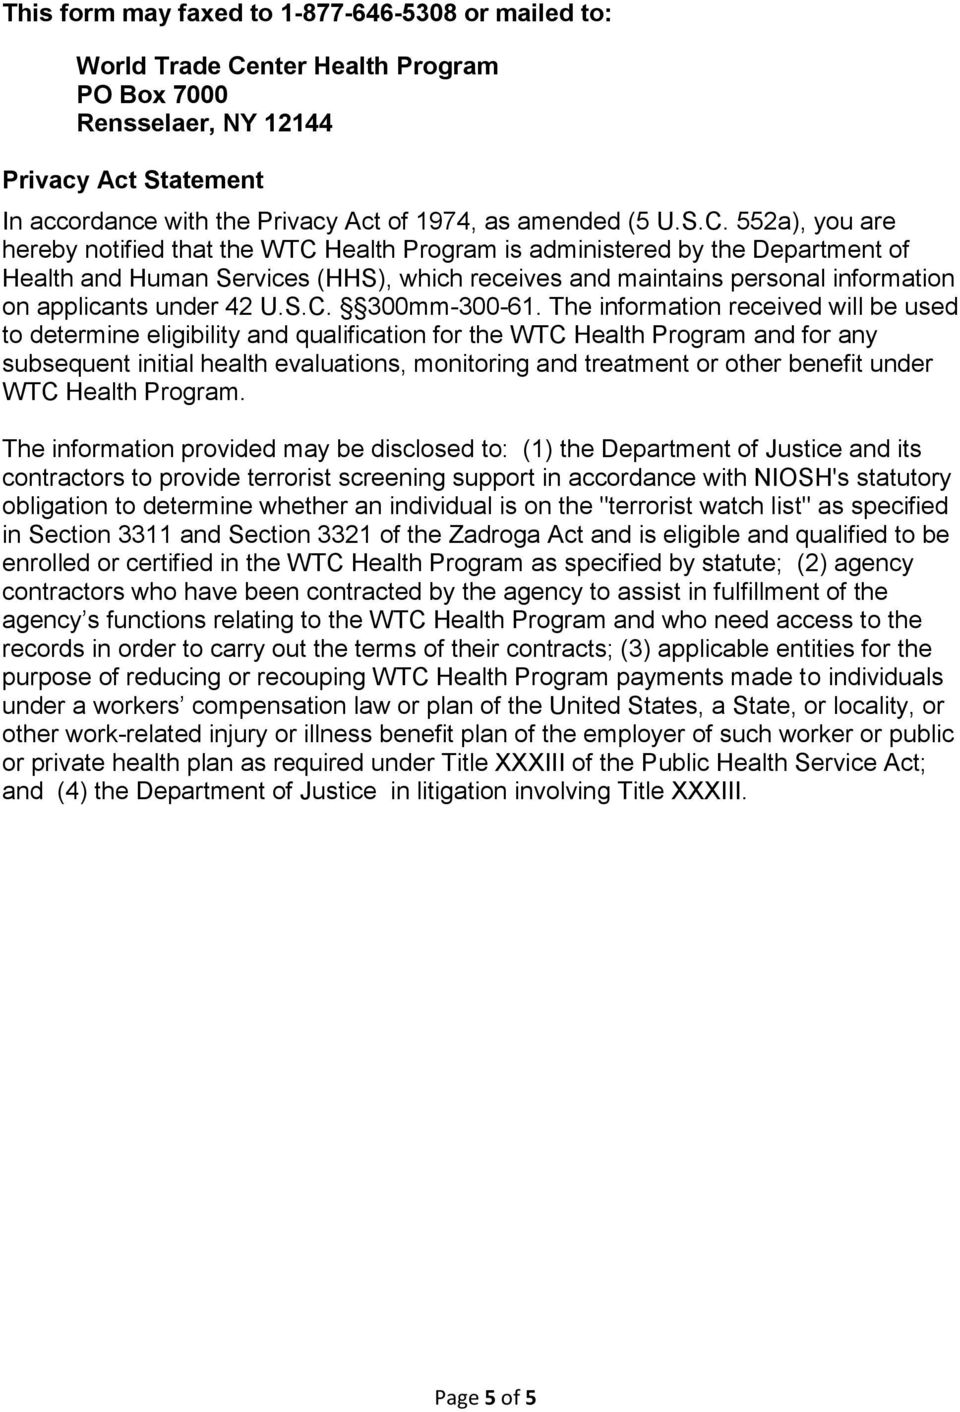 552a), you are hereby notified that the WTC Health Program is administered by the Department of Health and Human Services (HHS), which receives and maintains personal information on applicants under